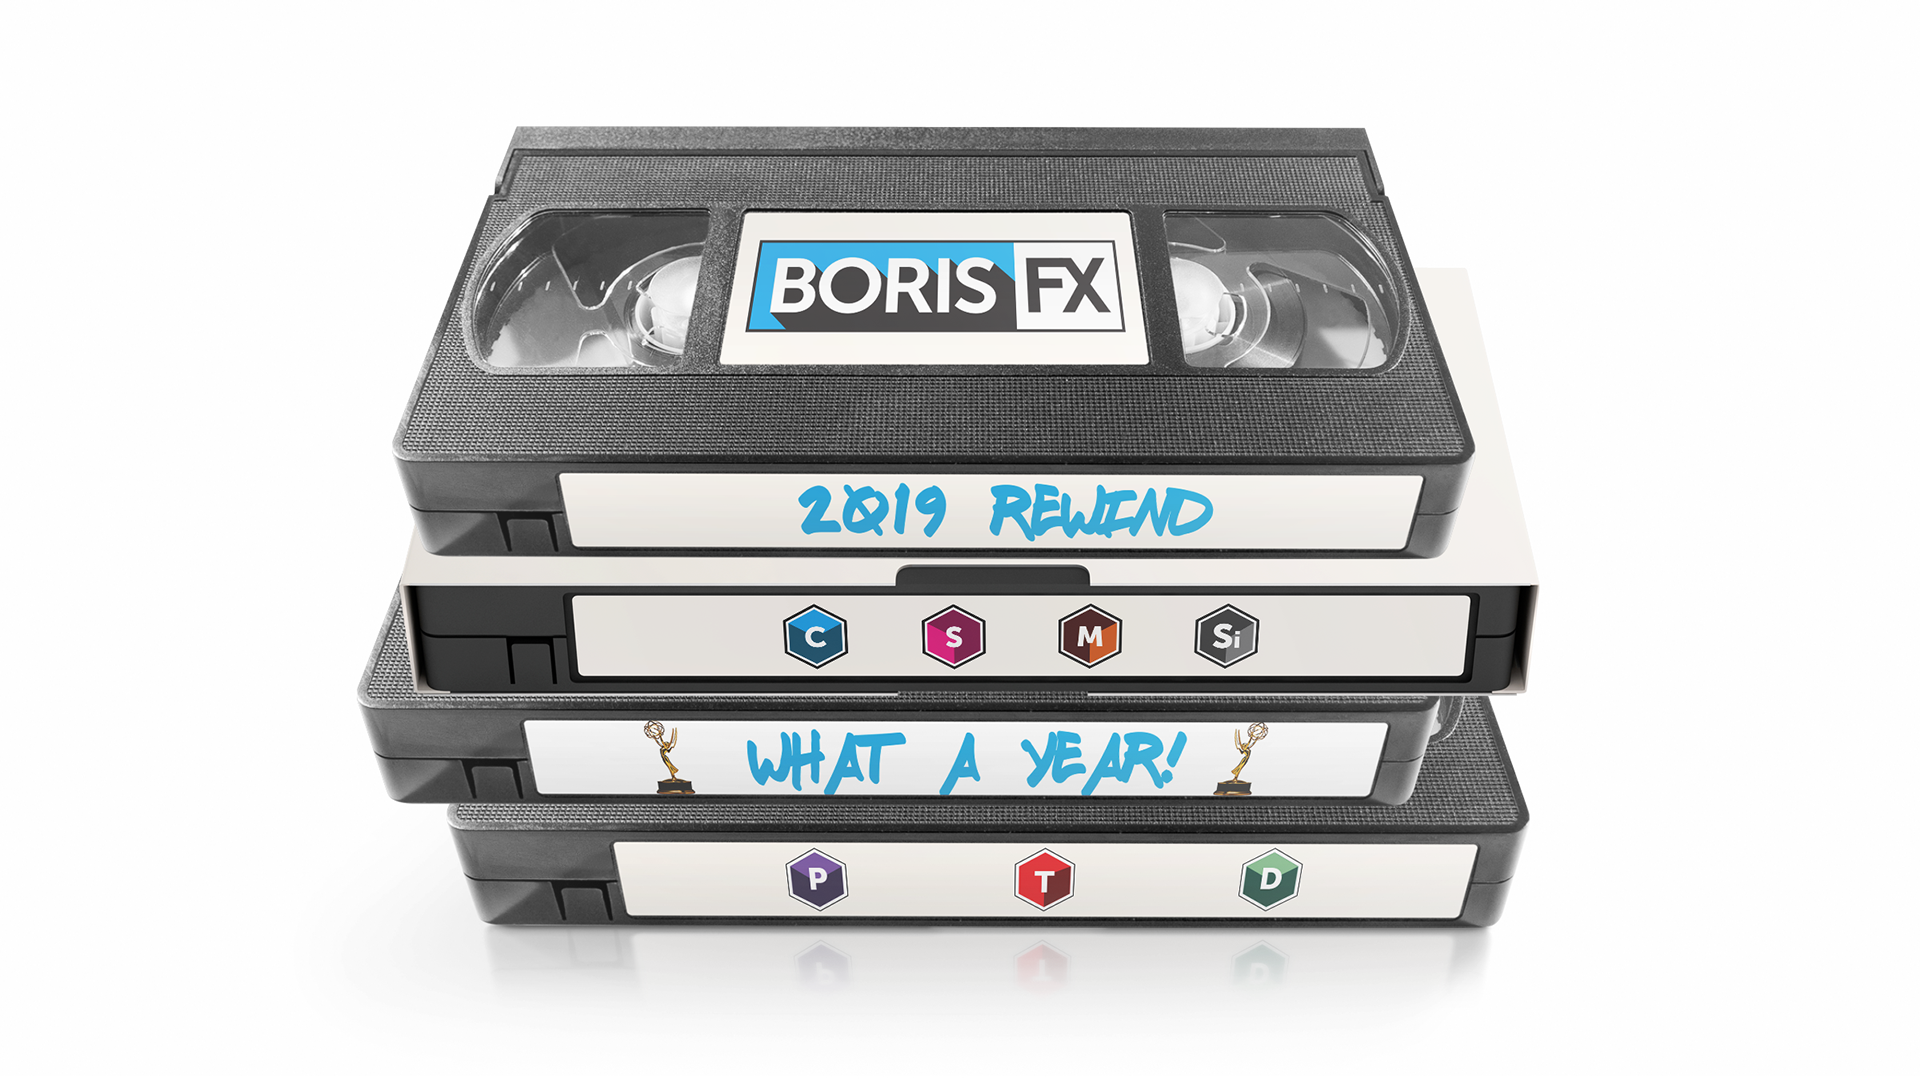 retro VHS tape featuring Boris FX